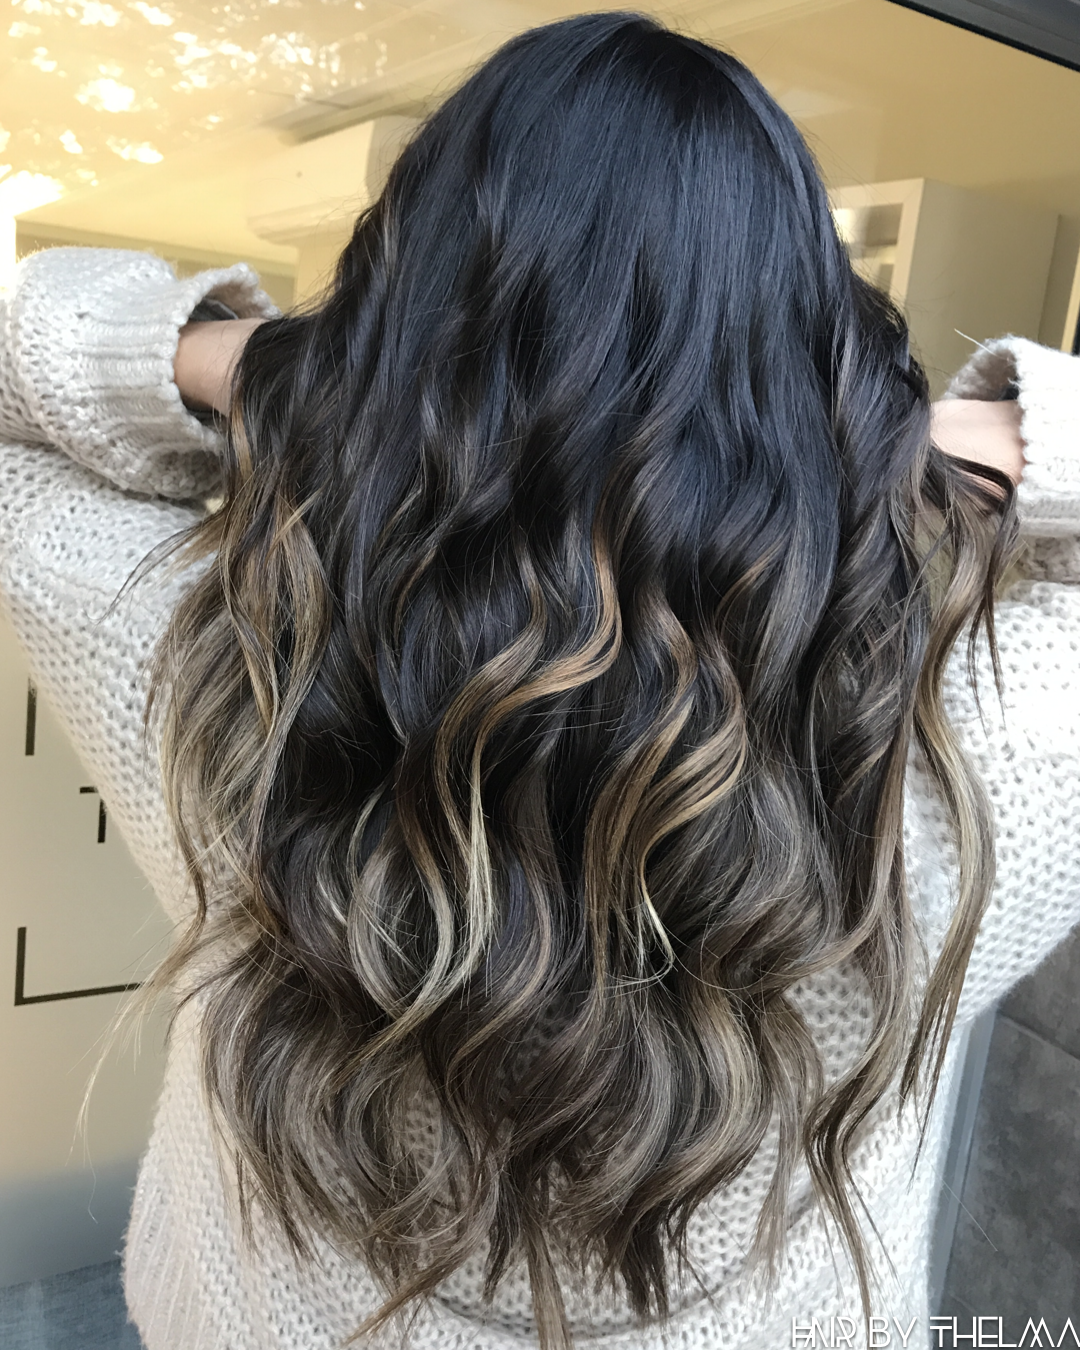 Easi Hair Pro Hair Extensions And Chocolate Caramel Hair Tapeextensions Hairbythelma Hairbythelma On Insta Caramel Hair Chocolate Caramel Hair Hair Beauty